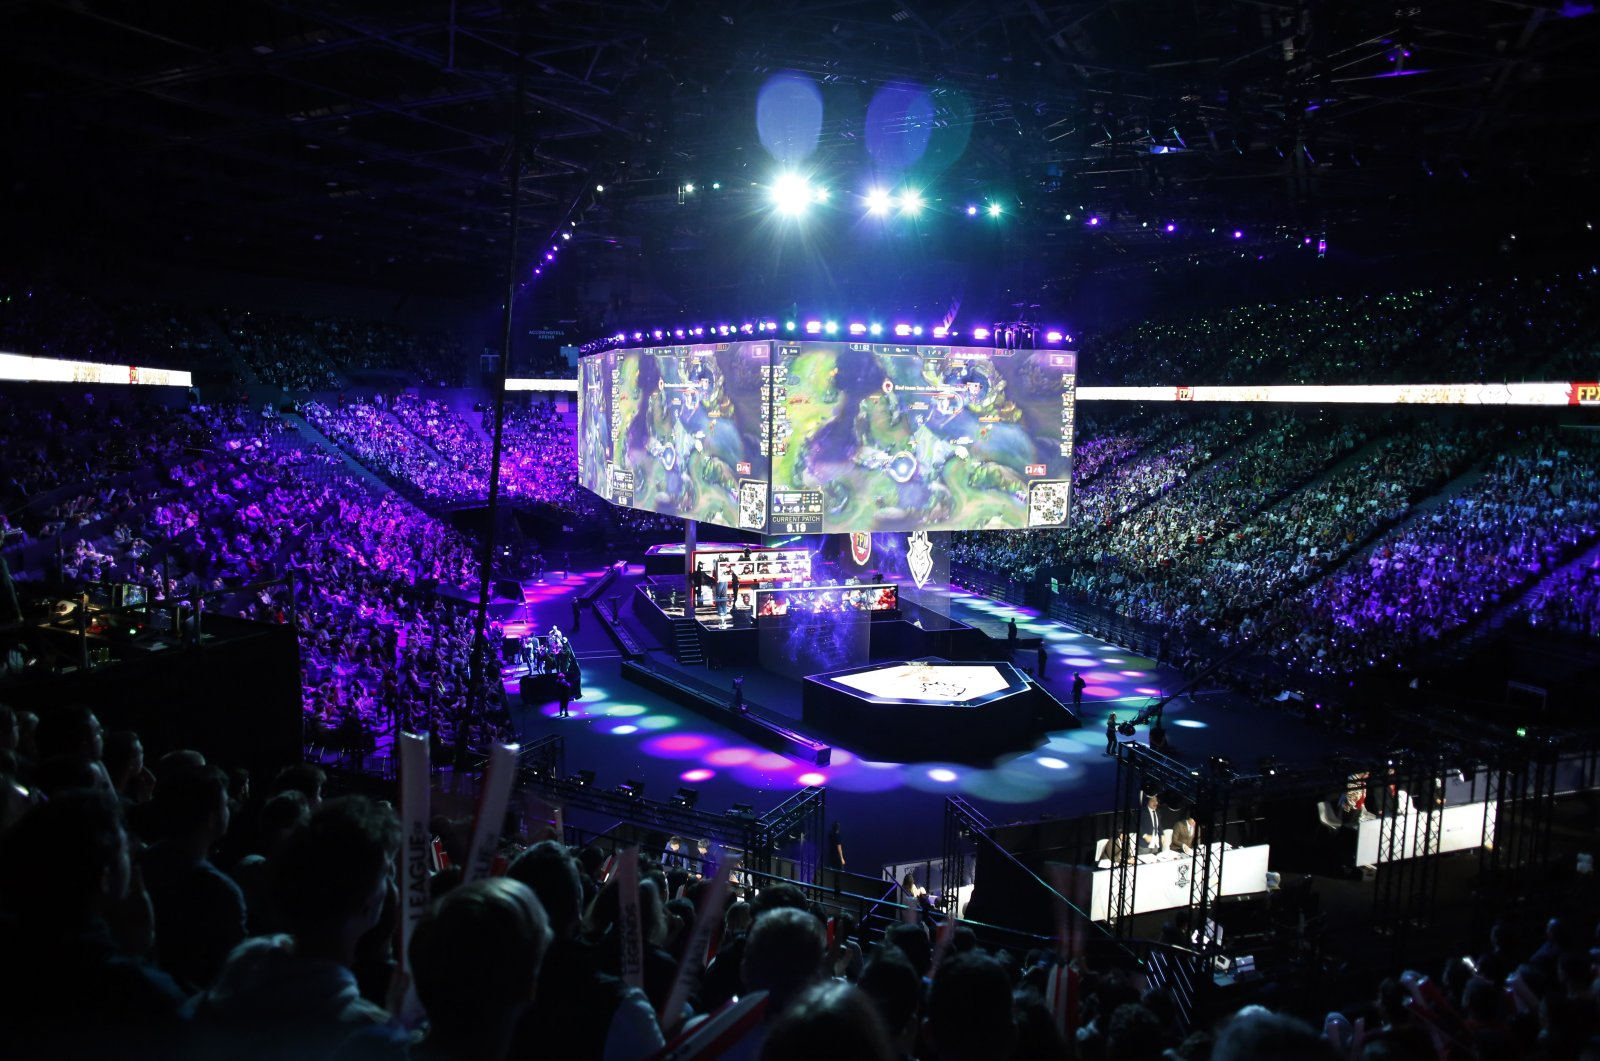 A general view during the final of League of Legends tournament between Team G2 Esports and Team FunPlus Phoenix, in Paris, Nov. 10, 2019. (AP Photo)